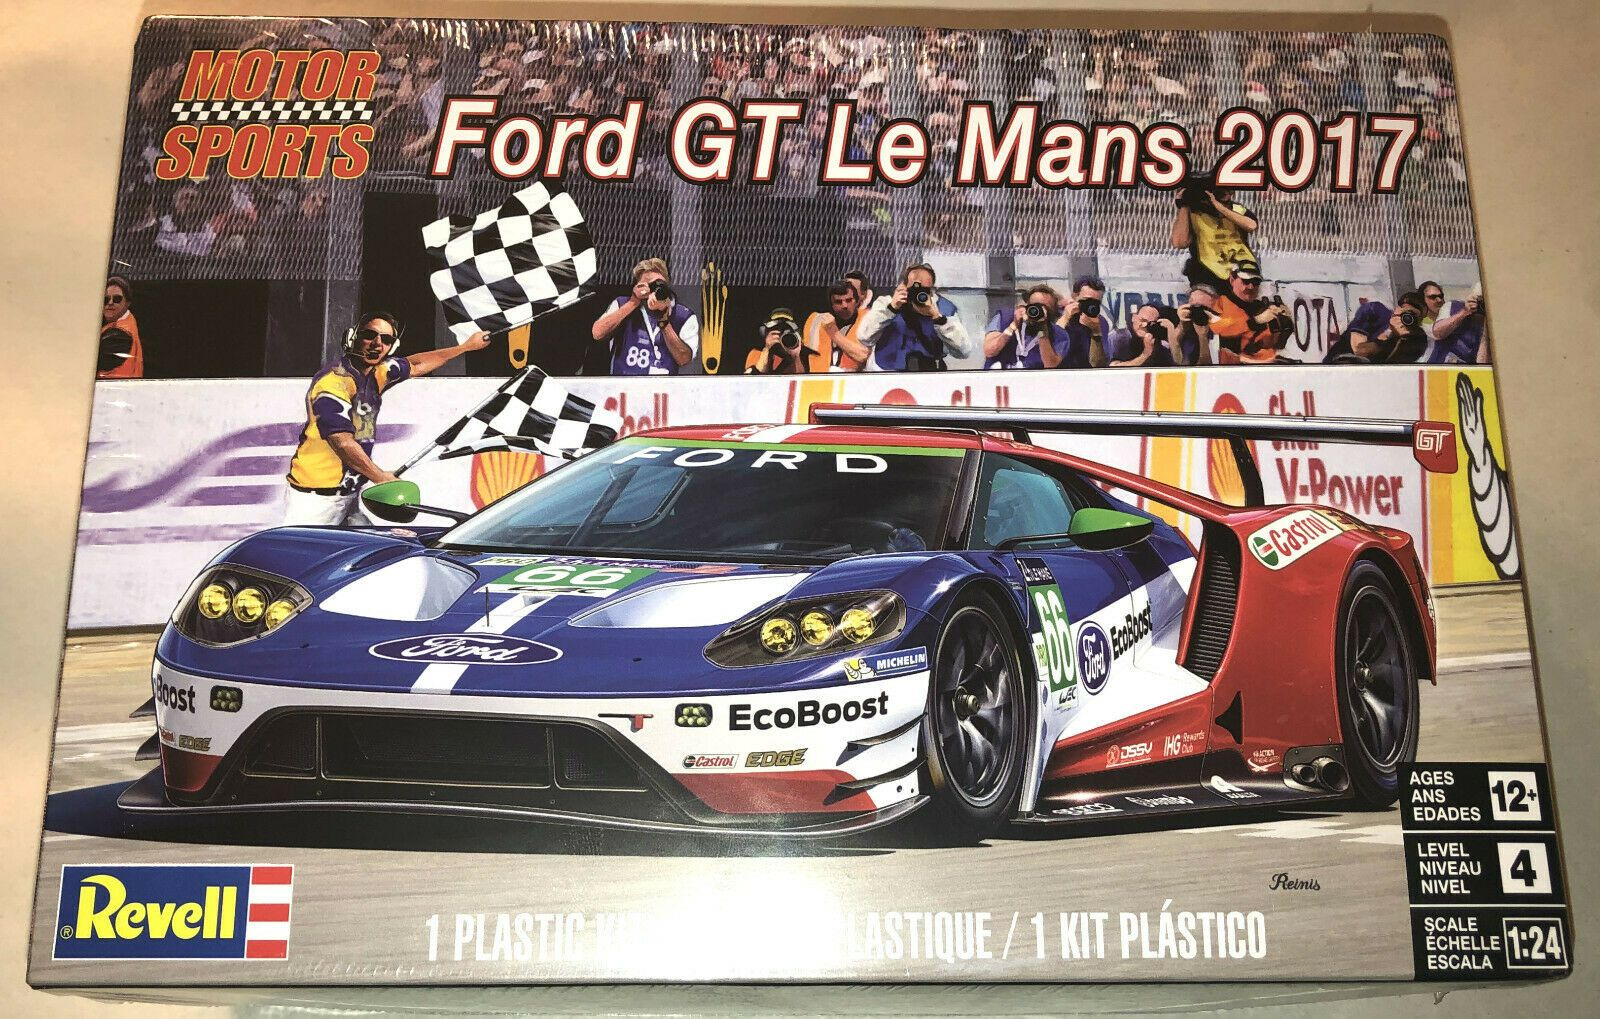 Details About Revell Ford Gt Le Mans 2017 1 24 Scale Plastic Model Kit New 4418 Ford Gt Ford Gt Le Mans Plastic Model Kits